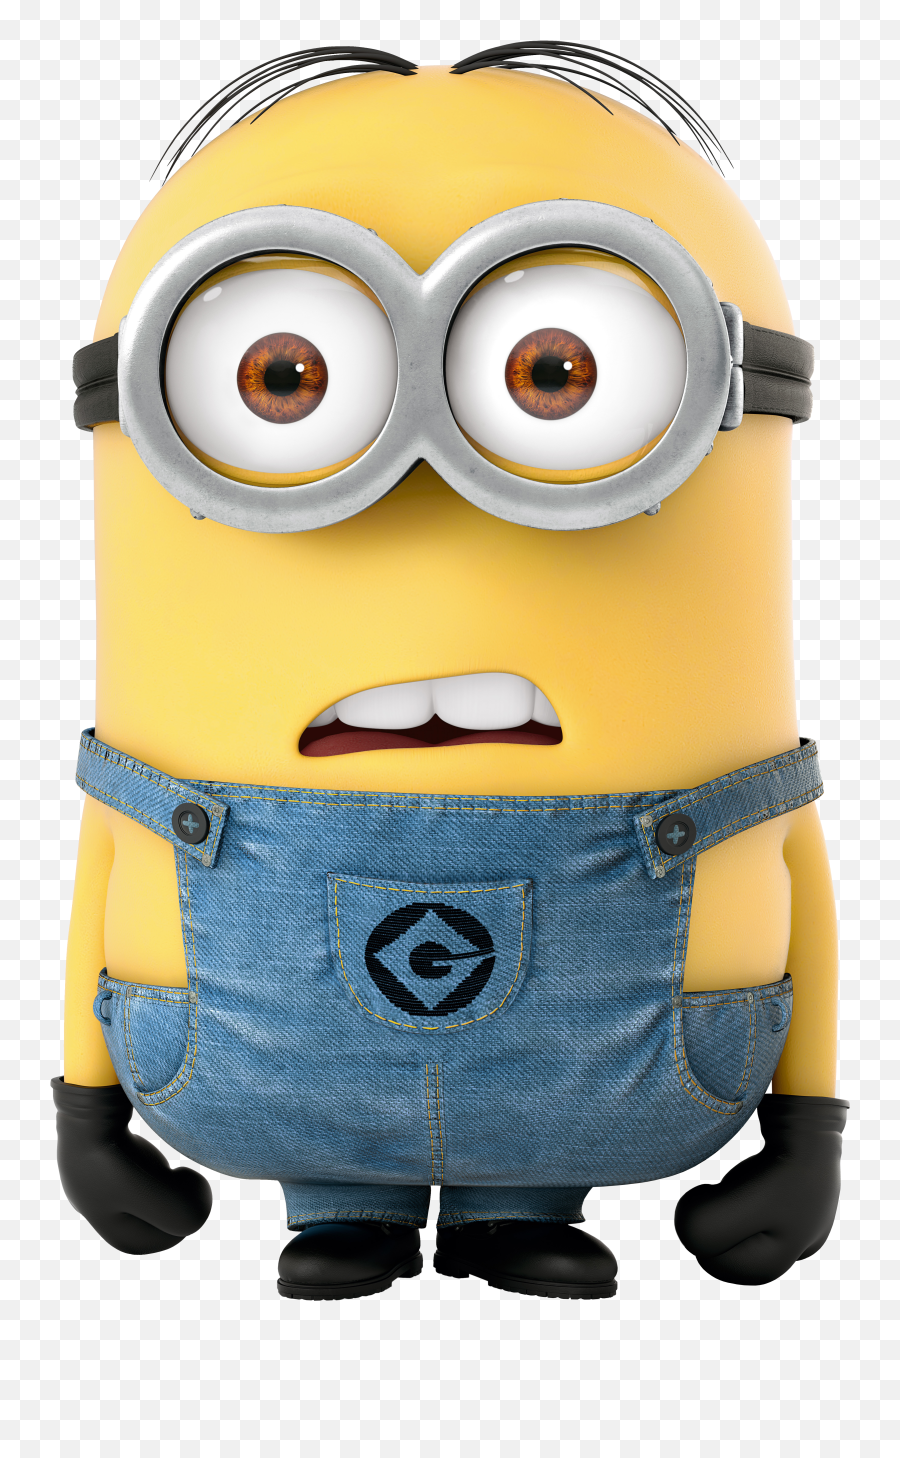 Minion Clipart Images Emoji,Minion Emoticons For Iphone